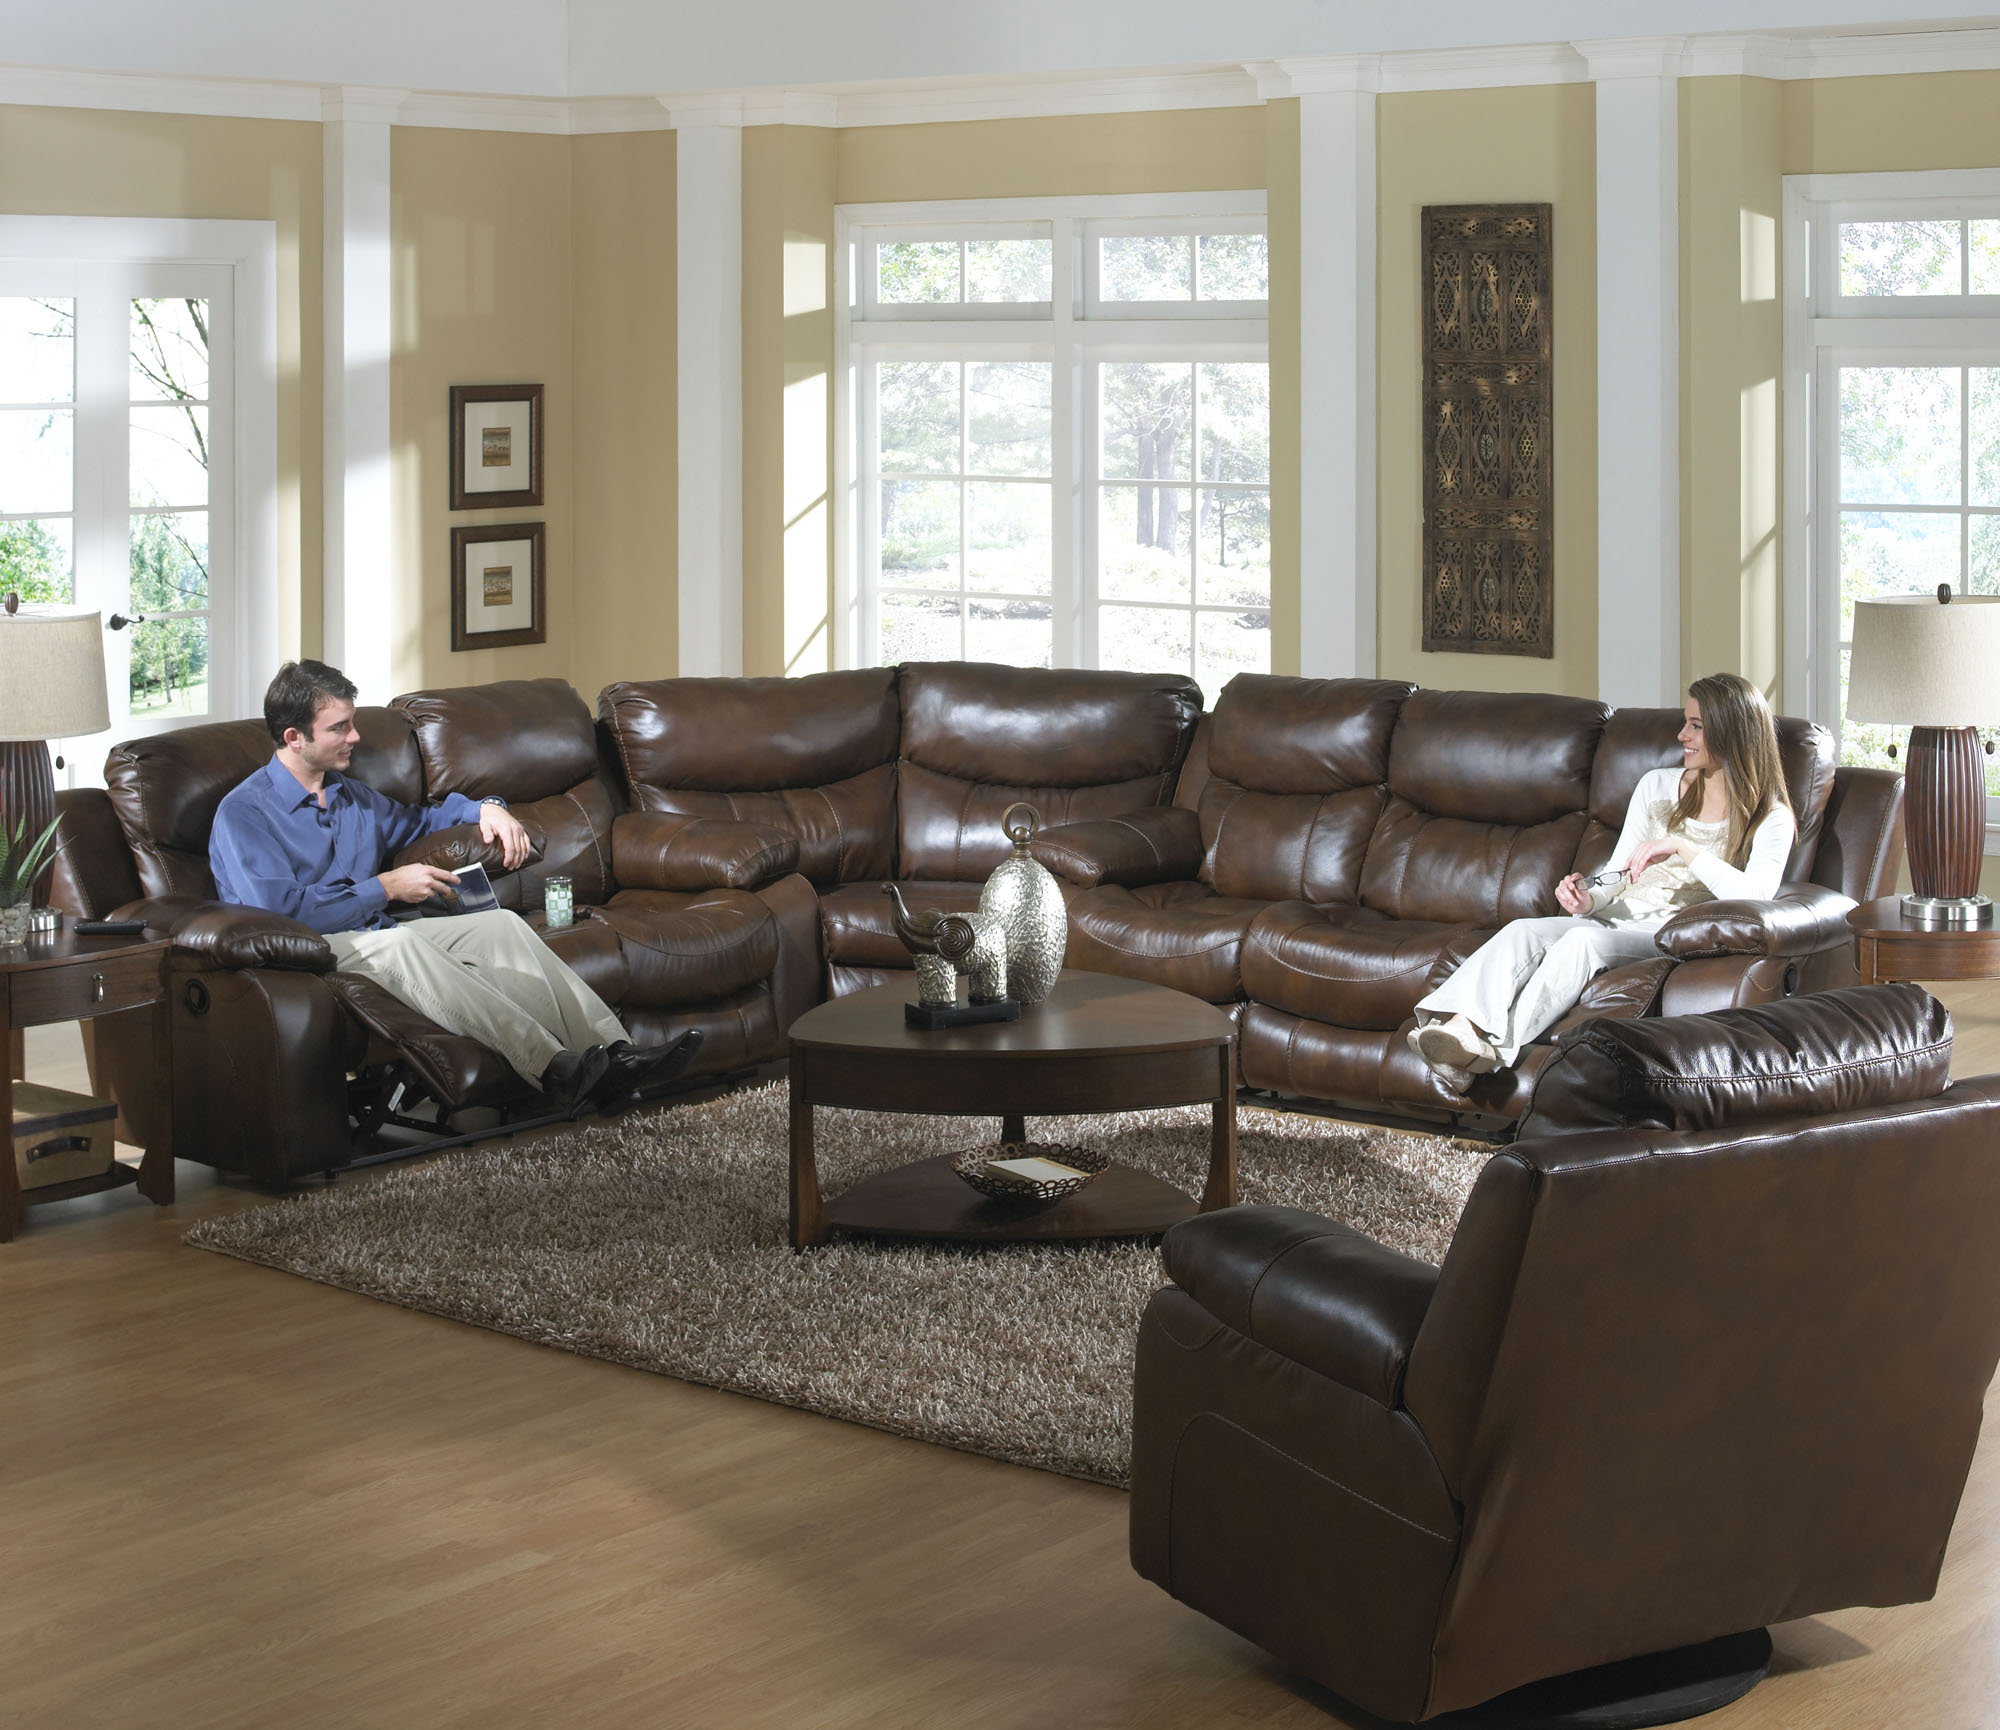 Catnapper Dallas Recline Tobacco Leather Sofa Sectional Set 4951 4959 4958